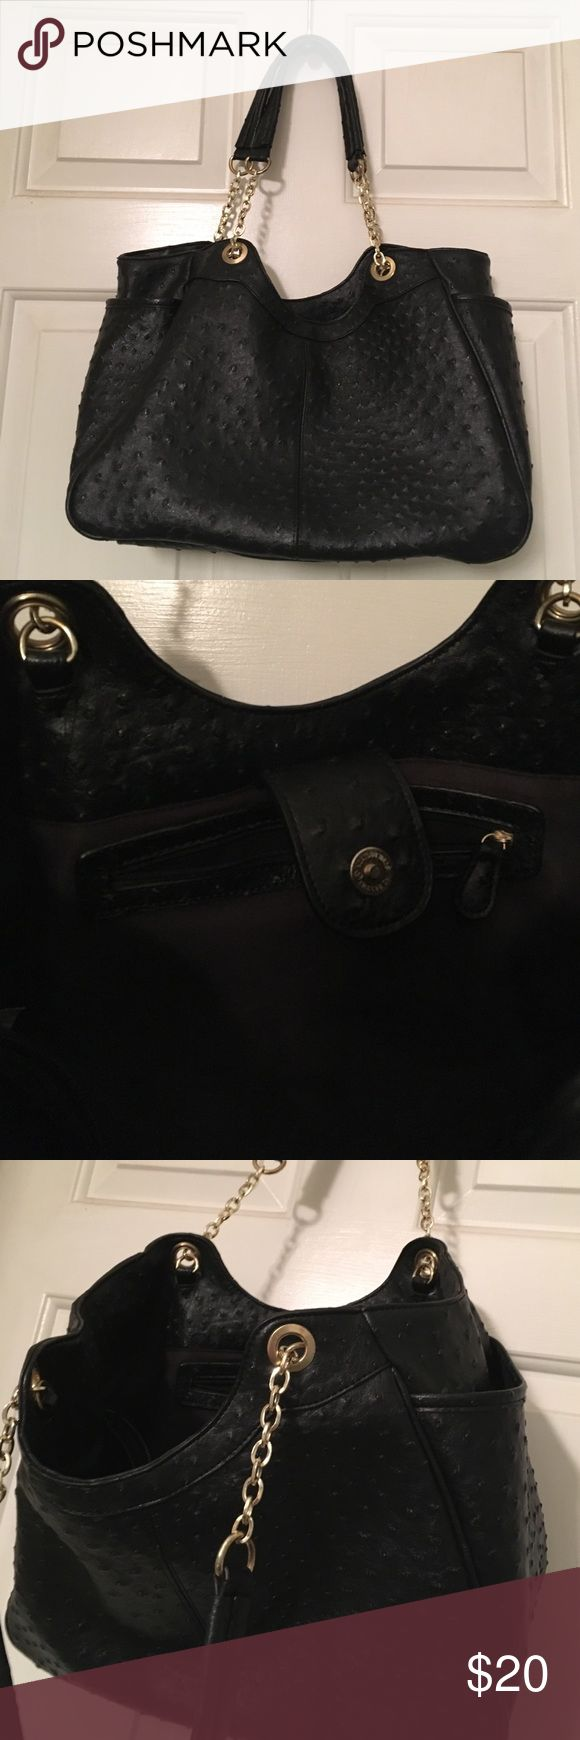 Faux Leather Ostrich Pattern Bag With Gold This is in great shape. I don't know the brand. It is a medium sized bag with three separate compartments inside. 14 x 10. Thanks for looking! unknown Bags Shoulder Bags